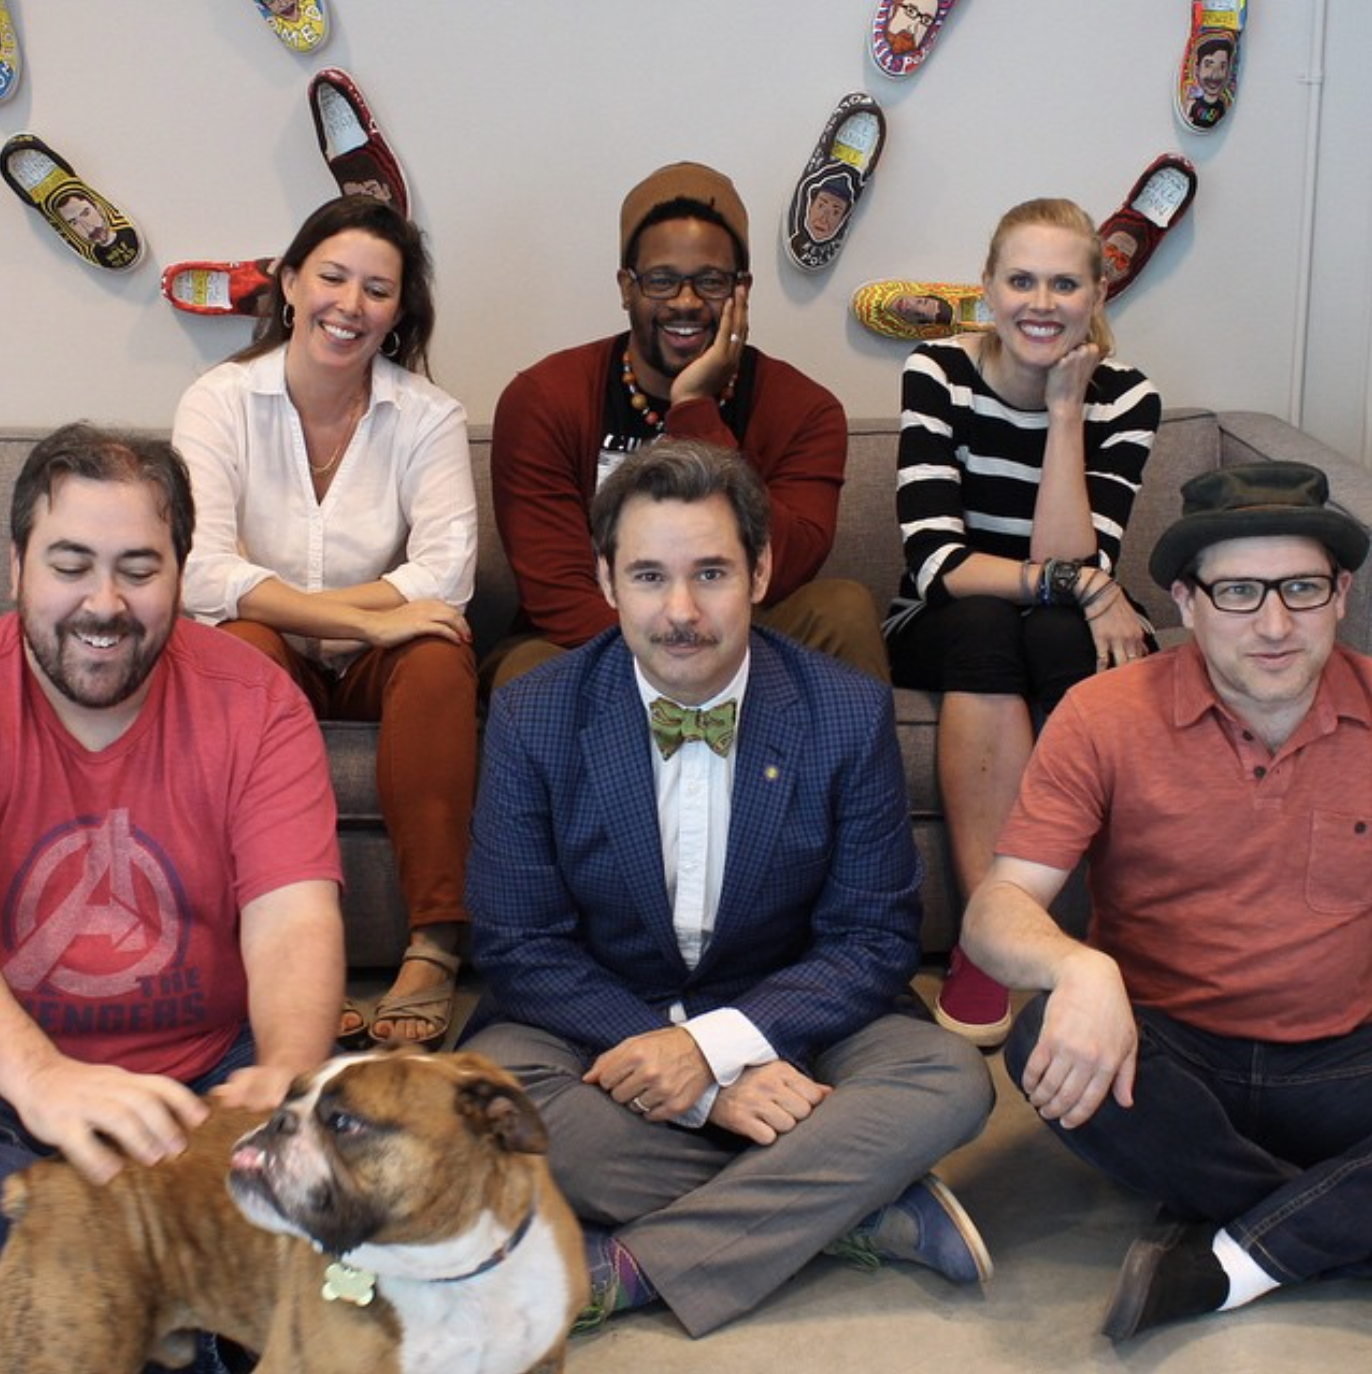 Spontaneanation with Paul F. Tompkins#12 The Waiting Room at An Oil Change Place(June 15th, 2015) - Paul F. Tompkins welcomes all his brothers he hasn't met yet, including women, back to Spontaneanation! This week Paul's special guest is hip-hop artist Open Mike Eagle! They chat about social anxiety, merch booths guidelines, and pizza day in high school. Paul is then joined by Janet Varney, Jean Villepique and Hal Lublin to improvise a story set in the Waiting Room at An Oil Change Place. As always, the sensational Eban Schletter scores it all on piano!